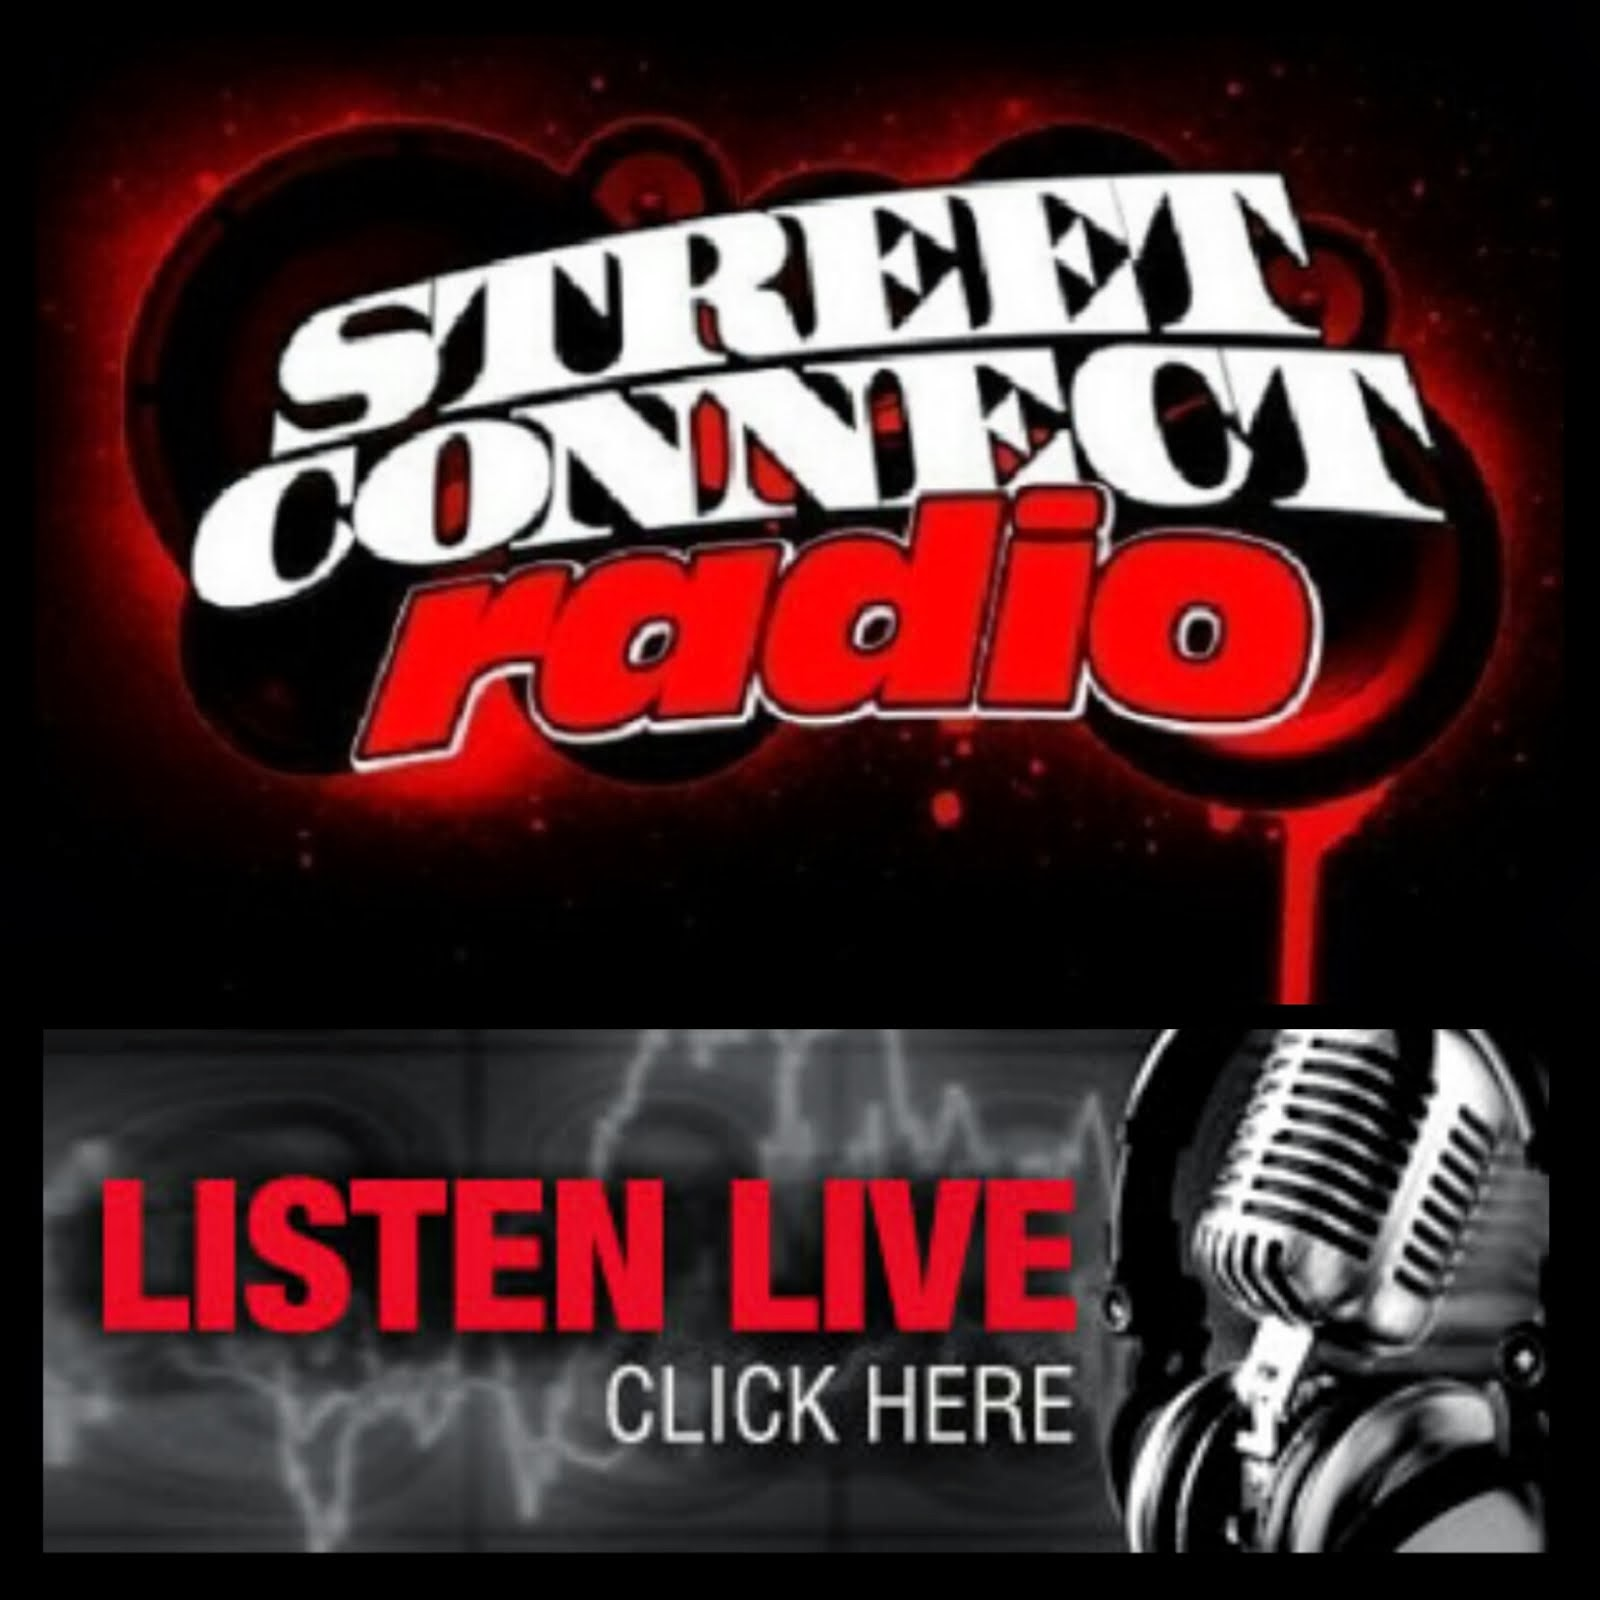 Street Connect Radio